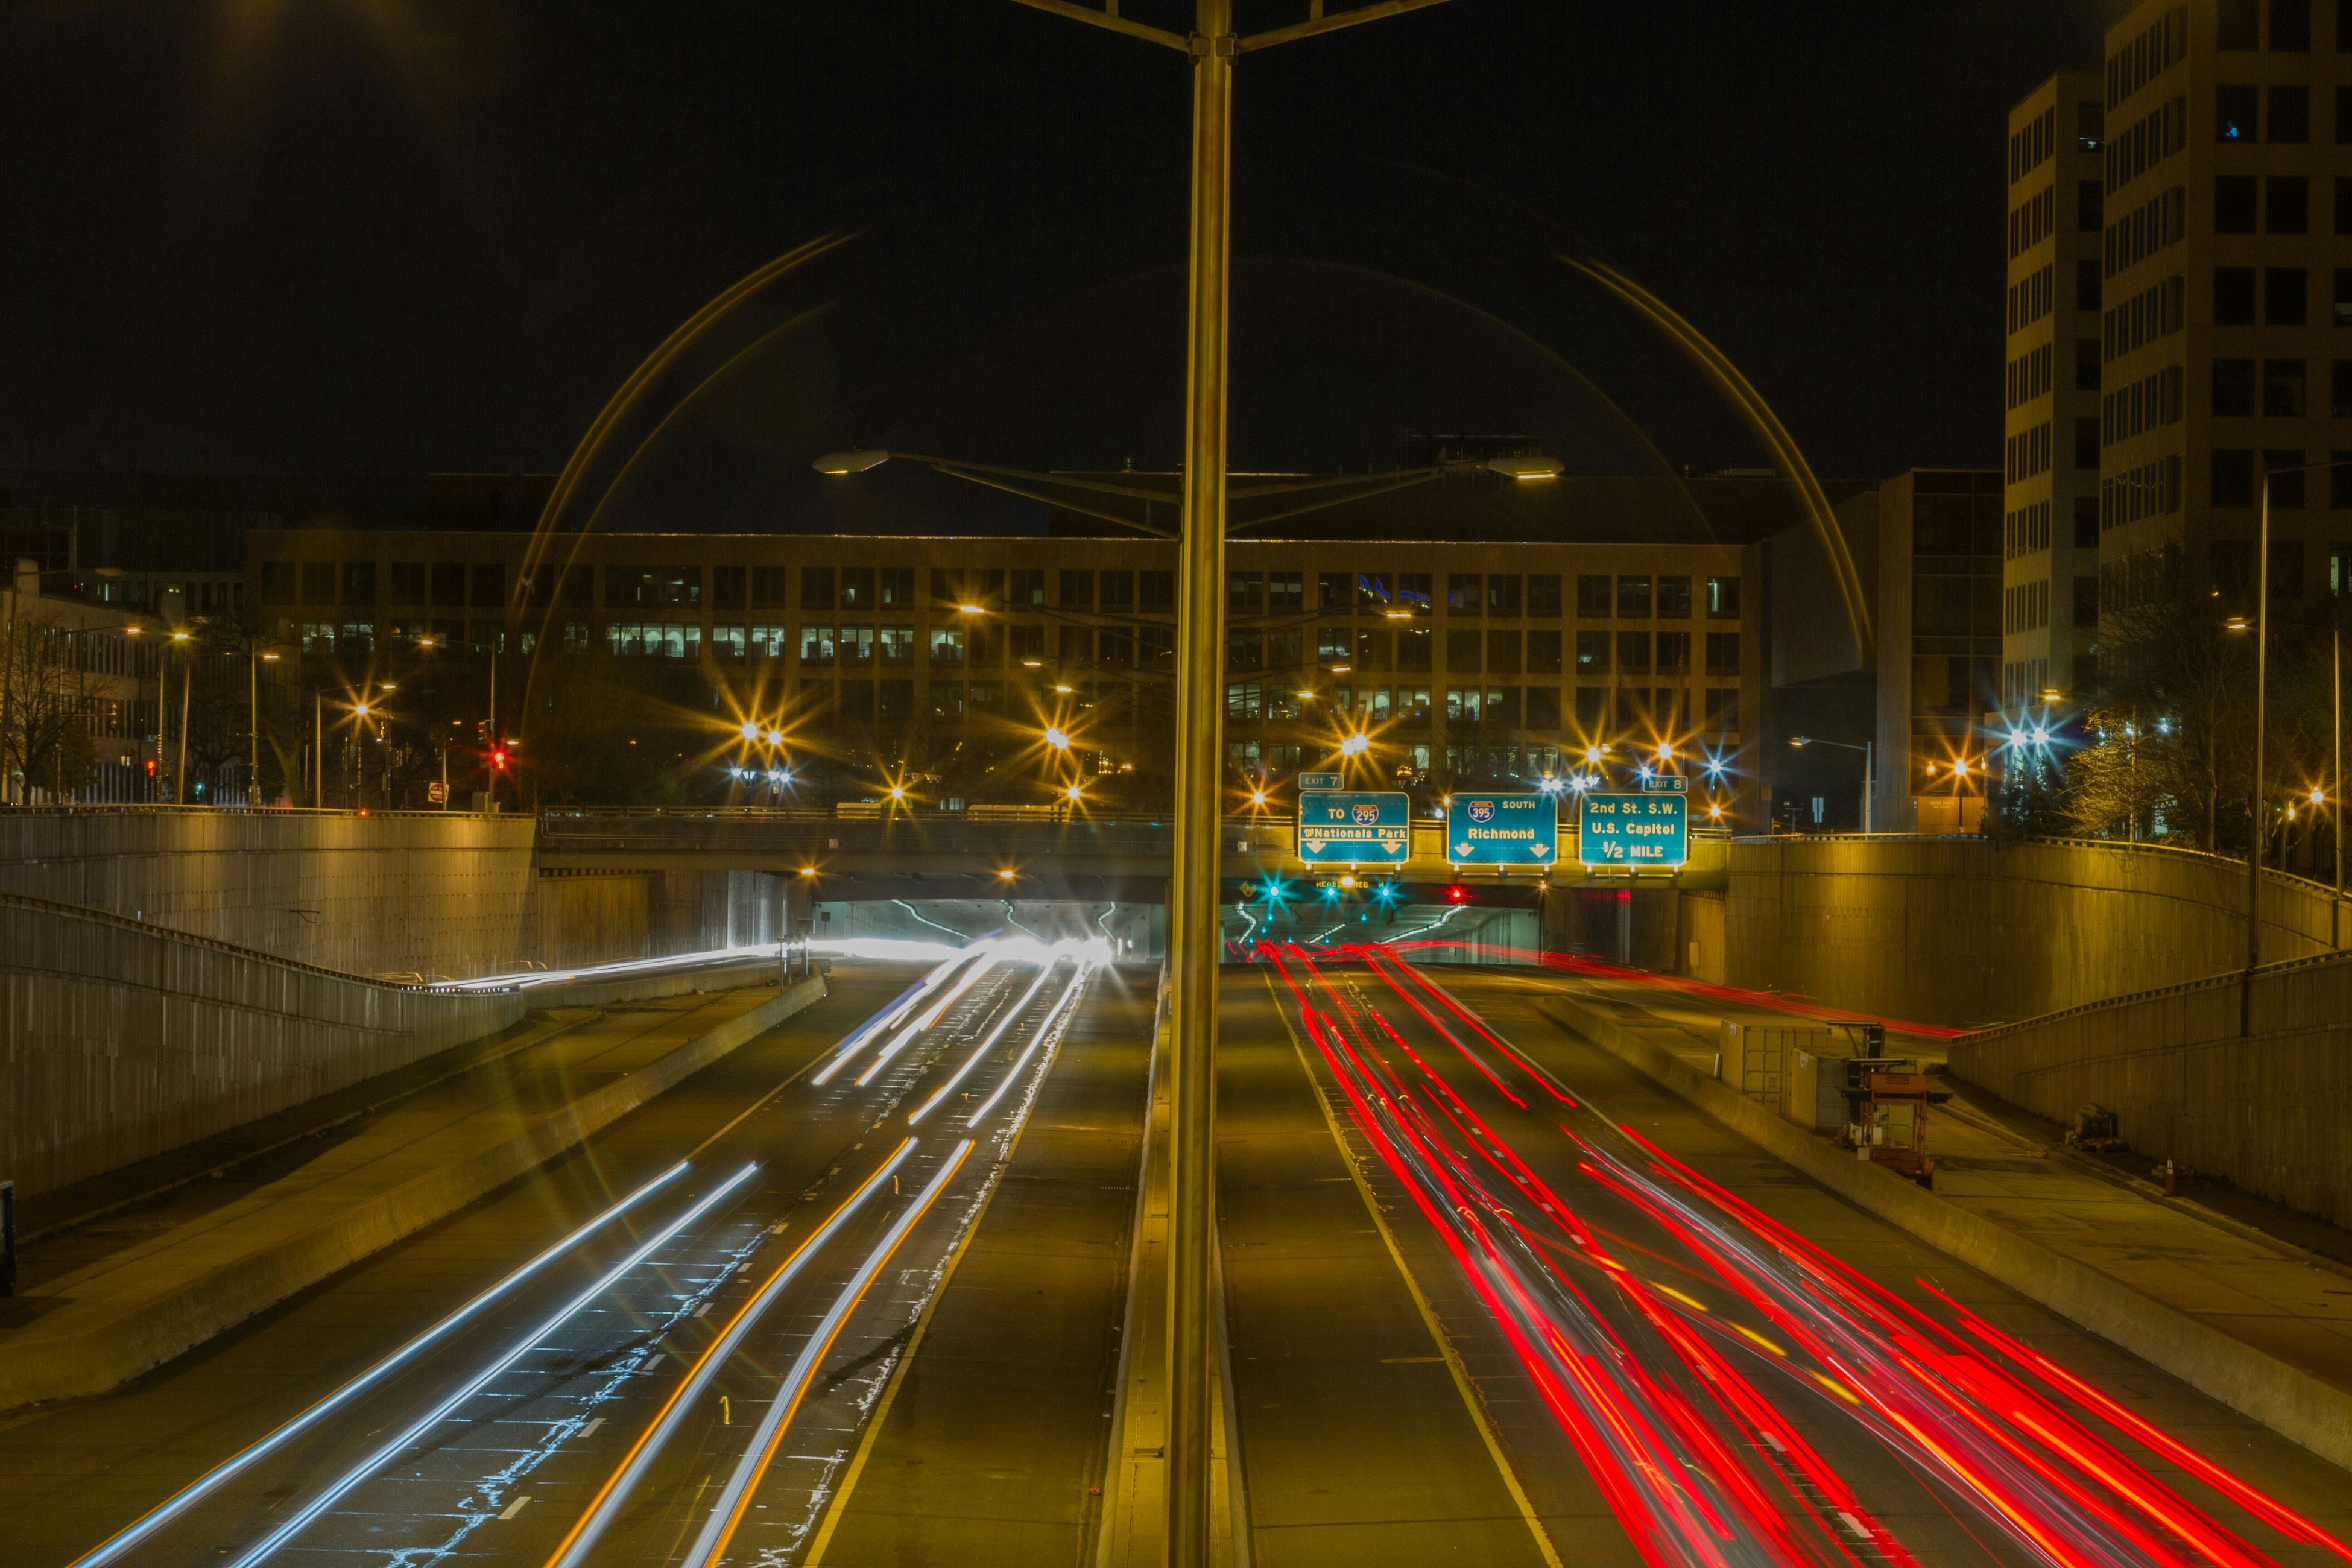 illuminated, night, long exposure, light trail, transportation, speed, motion, street light, city, blurred motion, road, traffic, built structure, architecture, lighting equipment, building exterior, street, city life, on the move, car